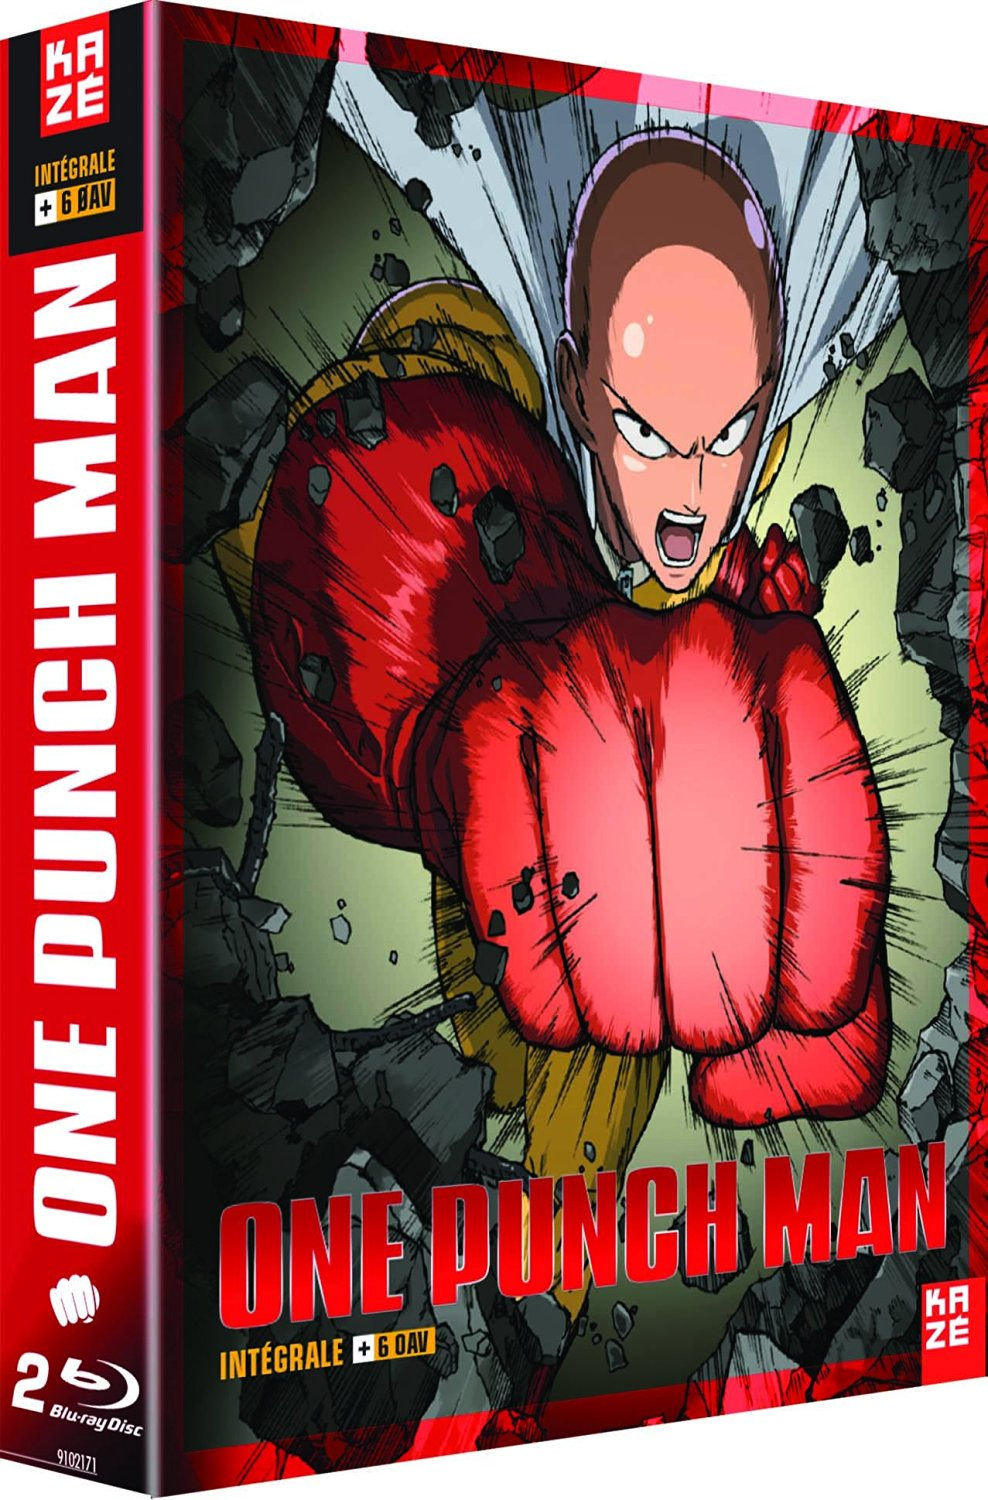 Intégrale One Punch Man -  2 BluRay Collector [Blu-ray]